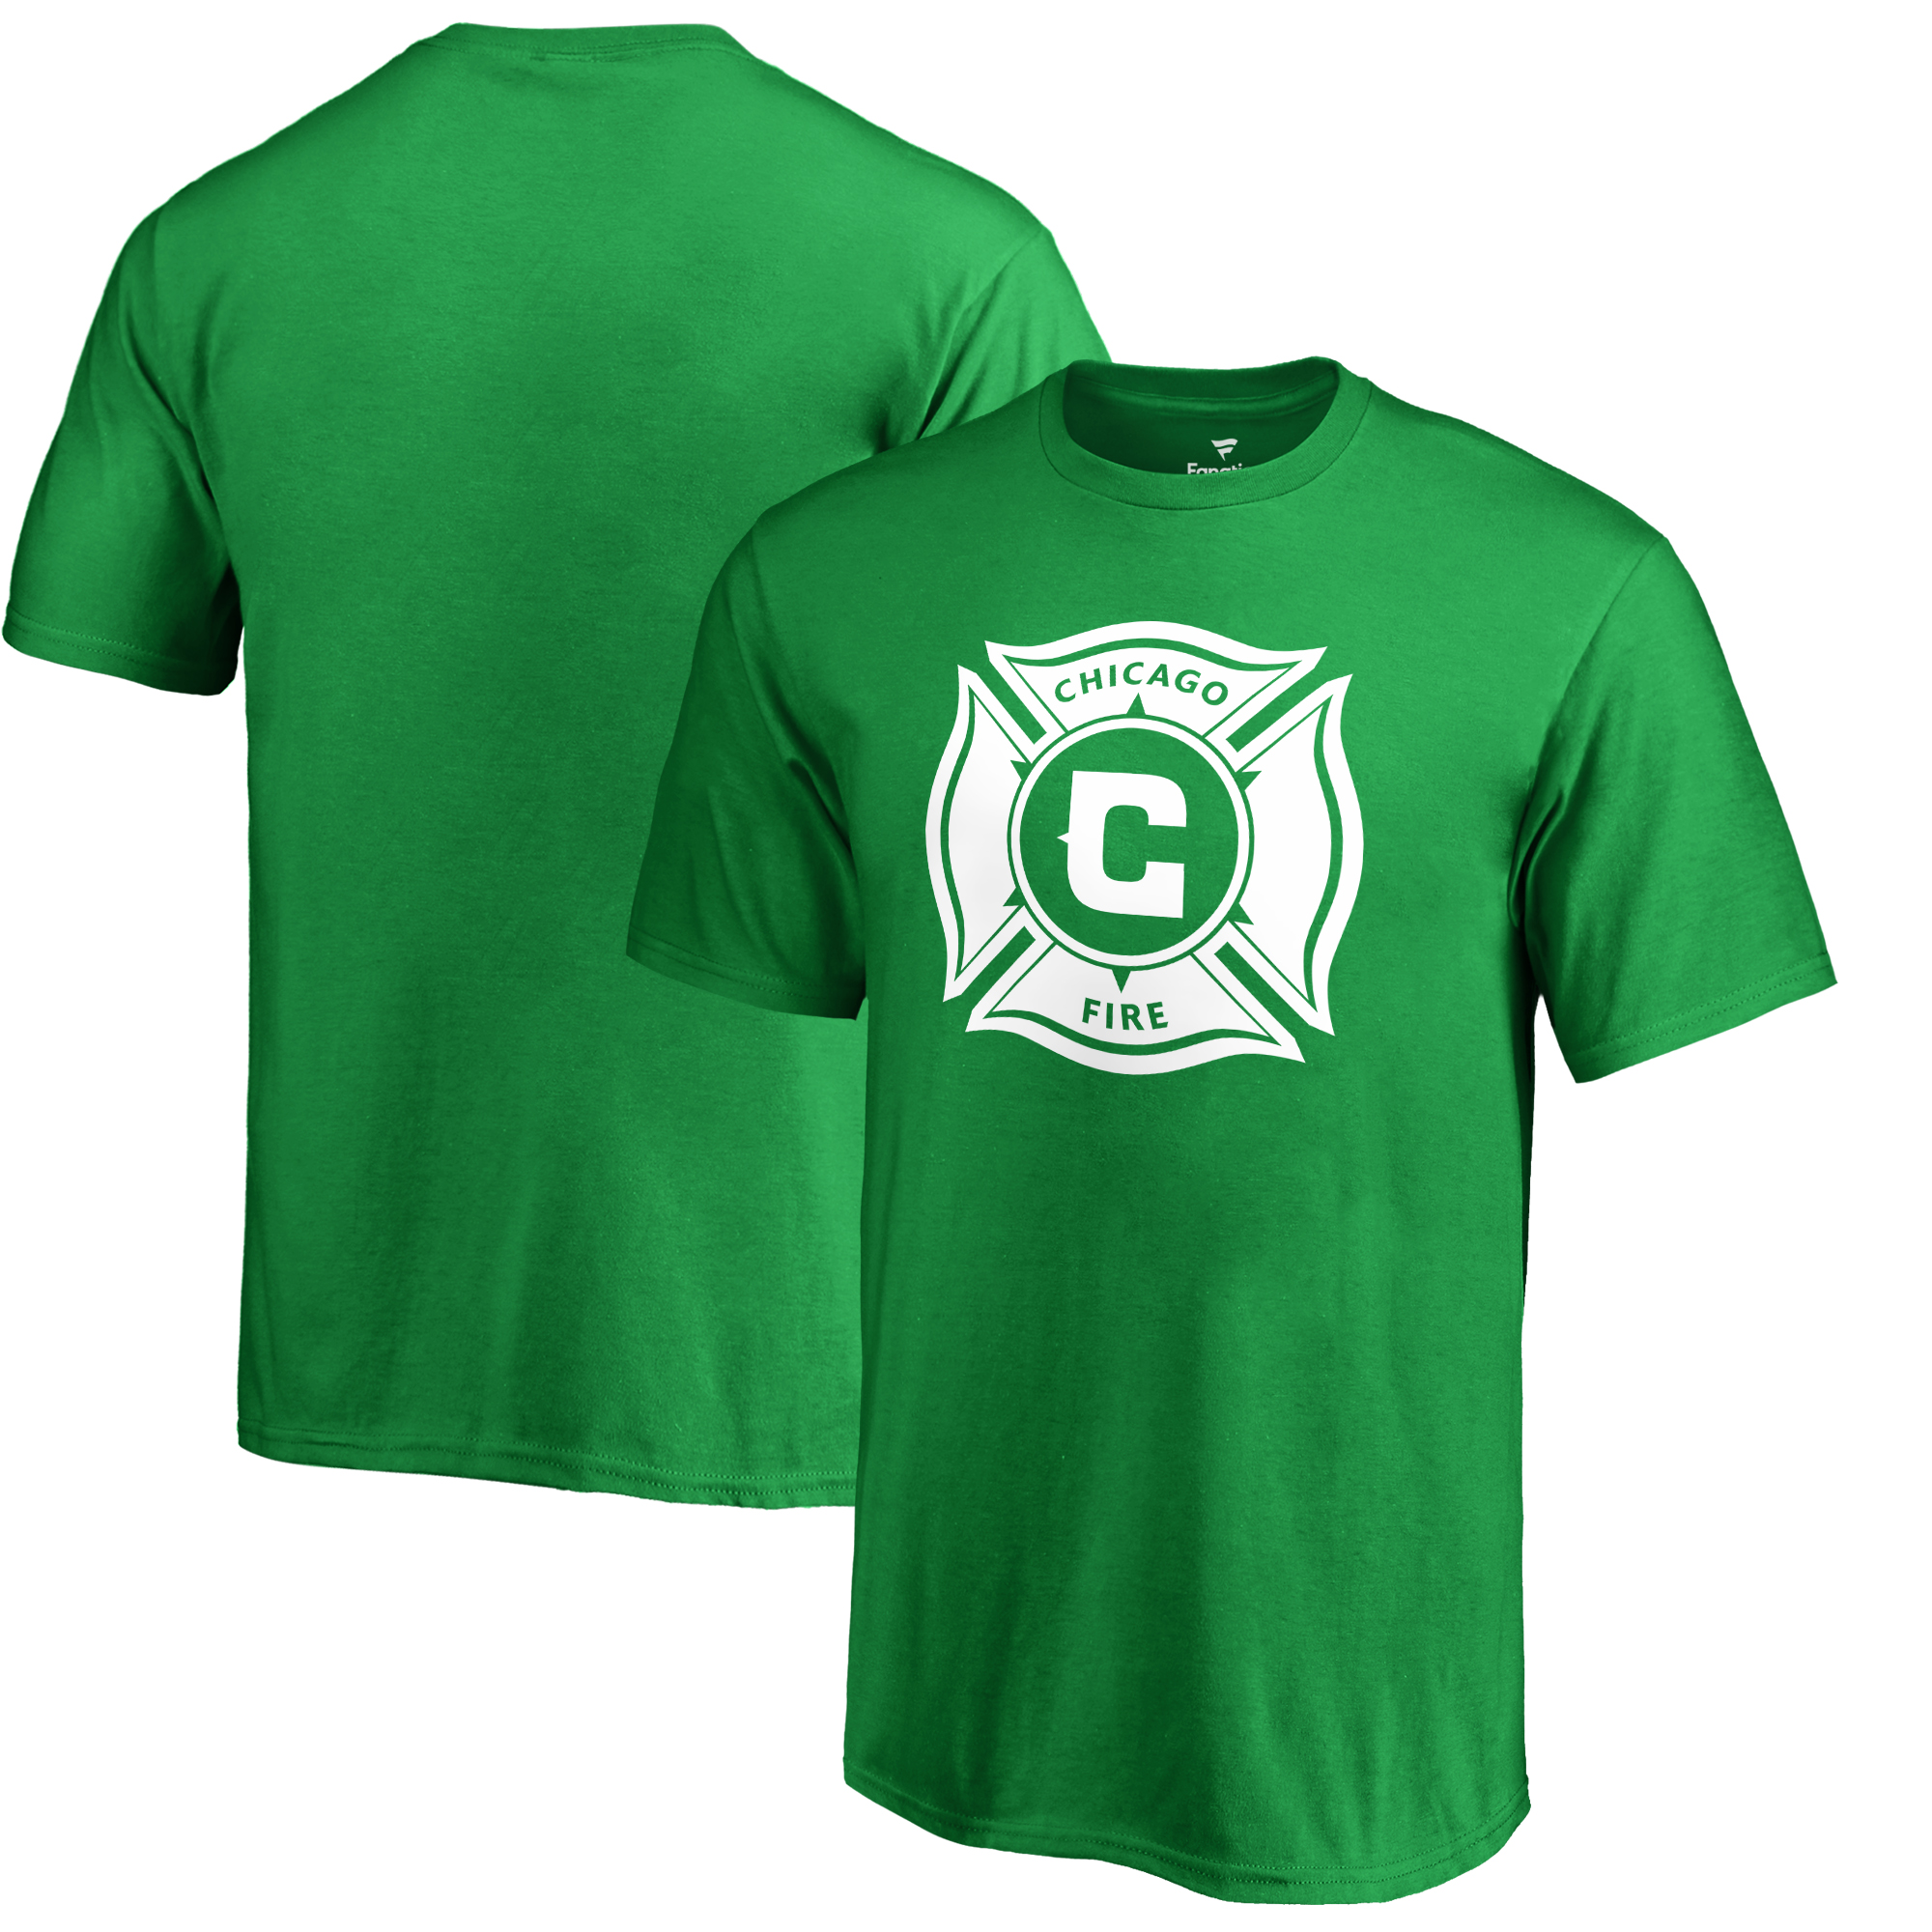 Chicago Fire Fanatics Branded Youth St. Patrick's Day White Logo T-Shirt - Kelly Green